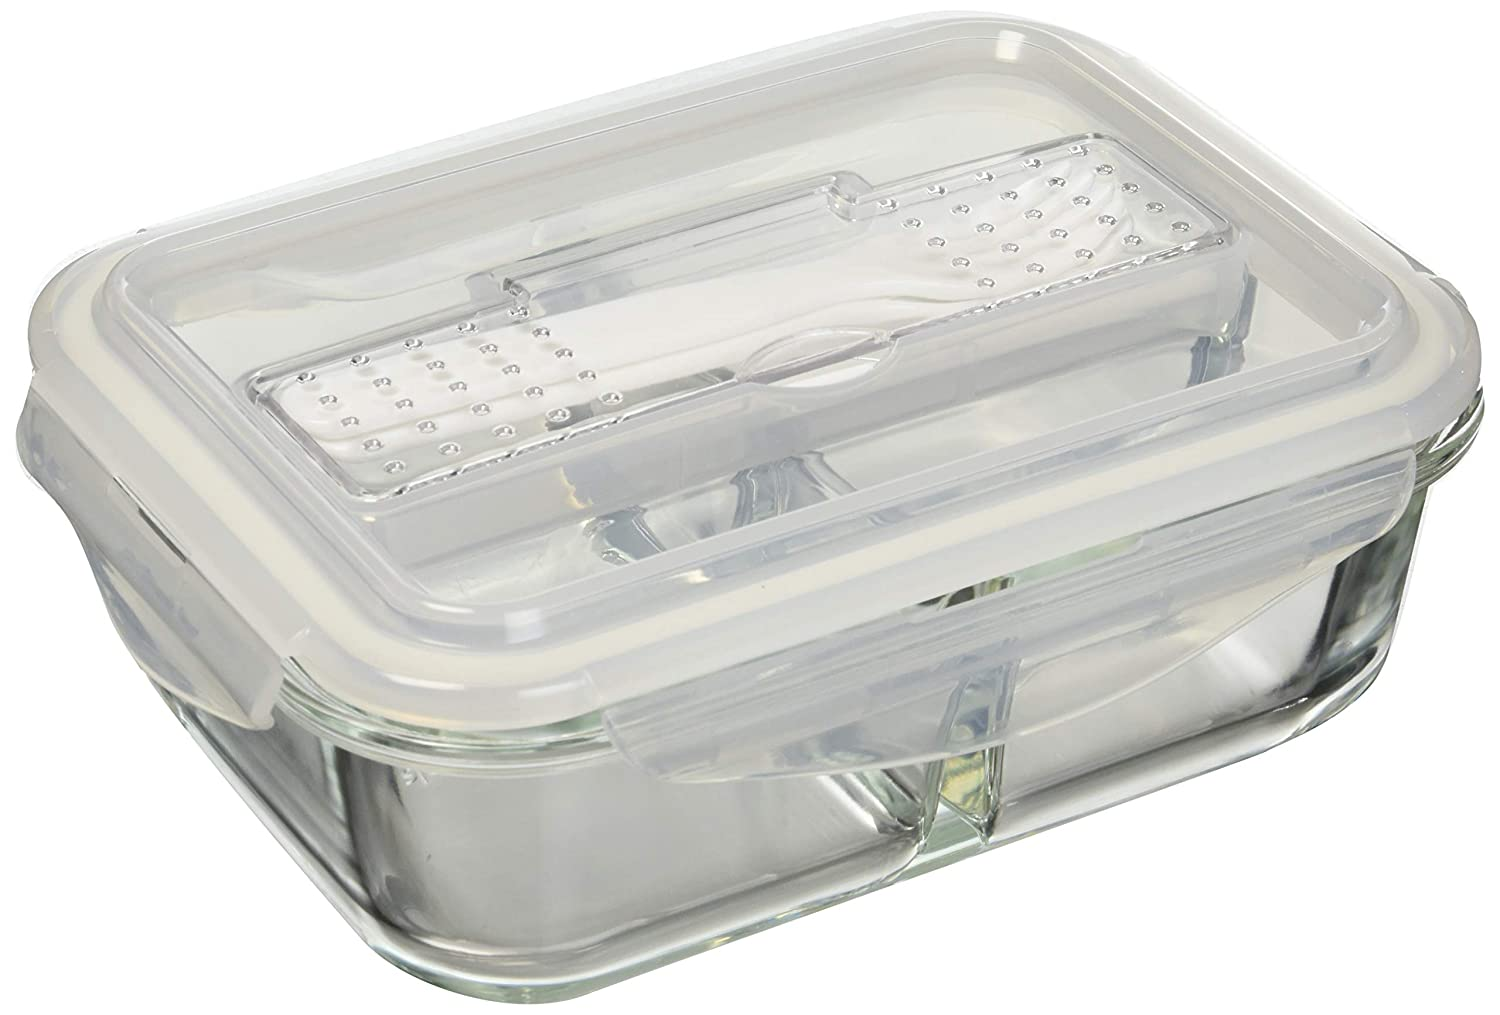 [3-Pack] Glass Meal Prep Containers 3 Compartment - Food Storage Container Set with Airtight Locking Lids with Cutlery Compartment - Portion Control - Microwave, Freezer, Oven & Dishwasher Safe HomeNative Ltd.